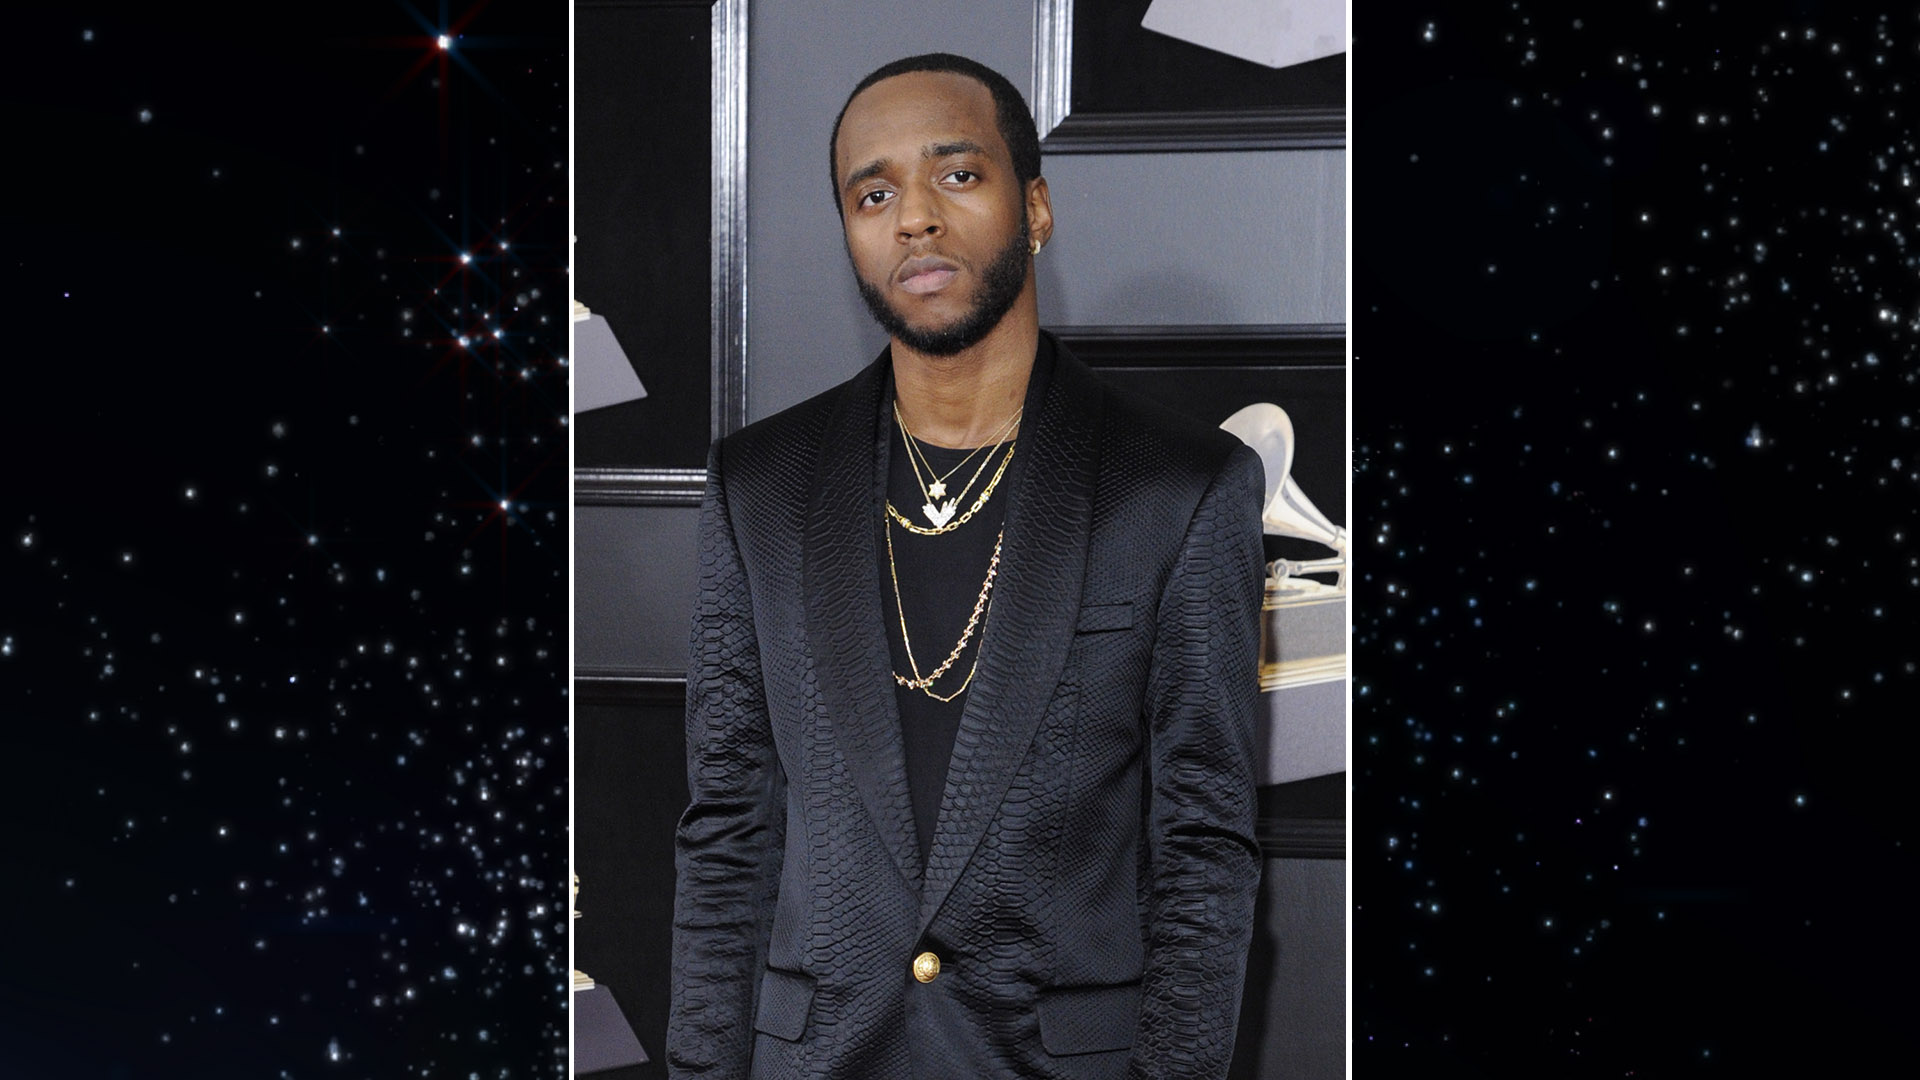 Singer/songwriter/rapper 6LACK doesn't have any fashion